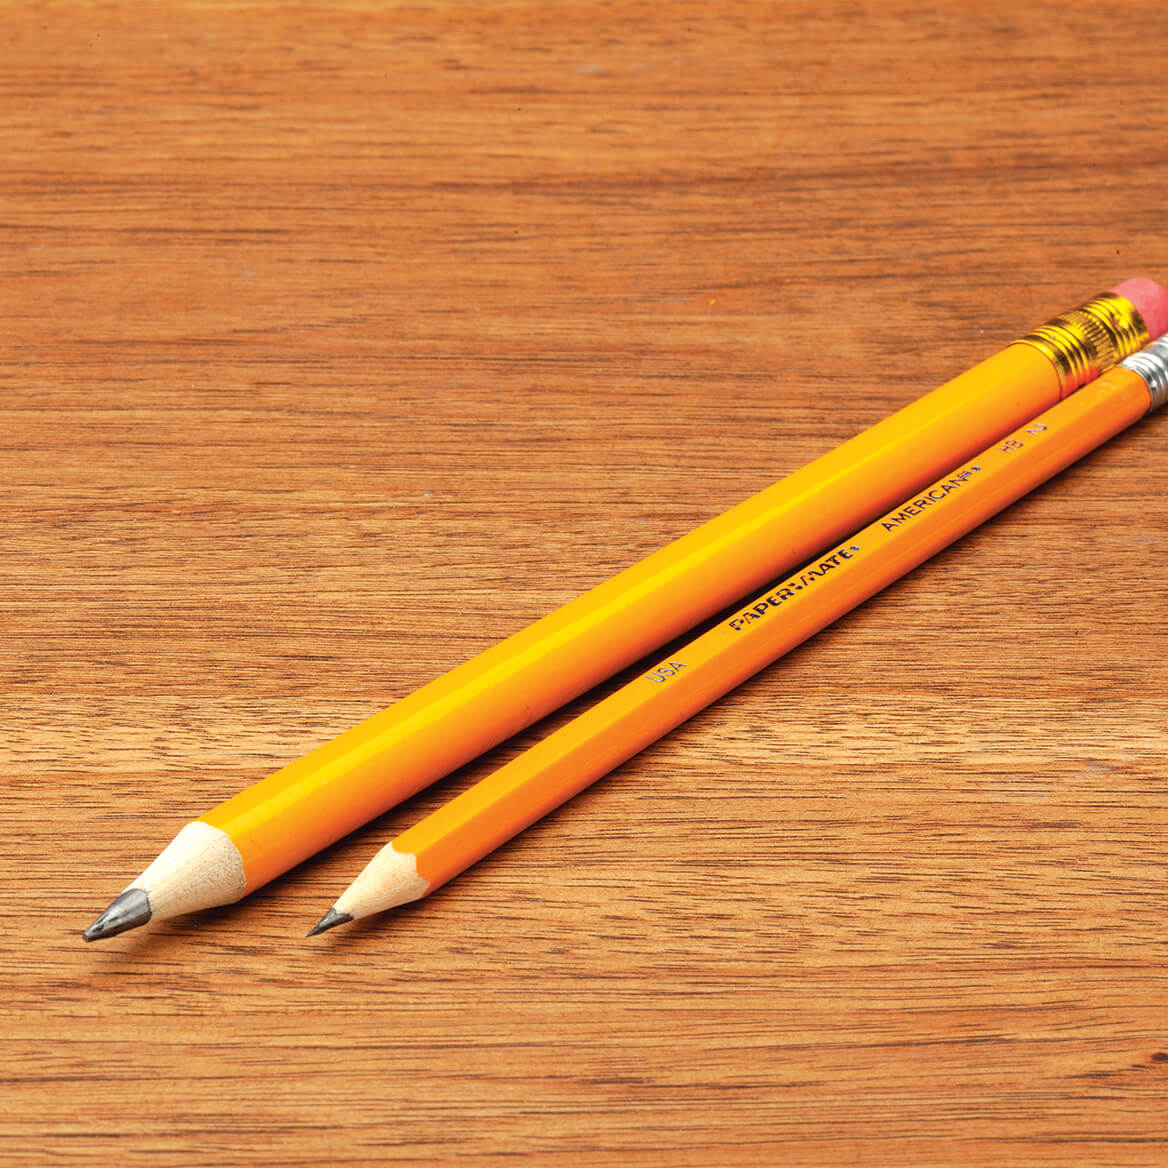 XL Pencils, Set of 12 with Sharpener-371914